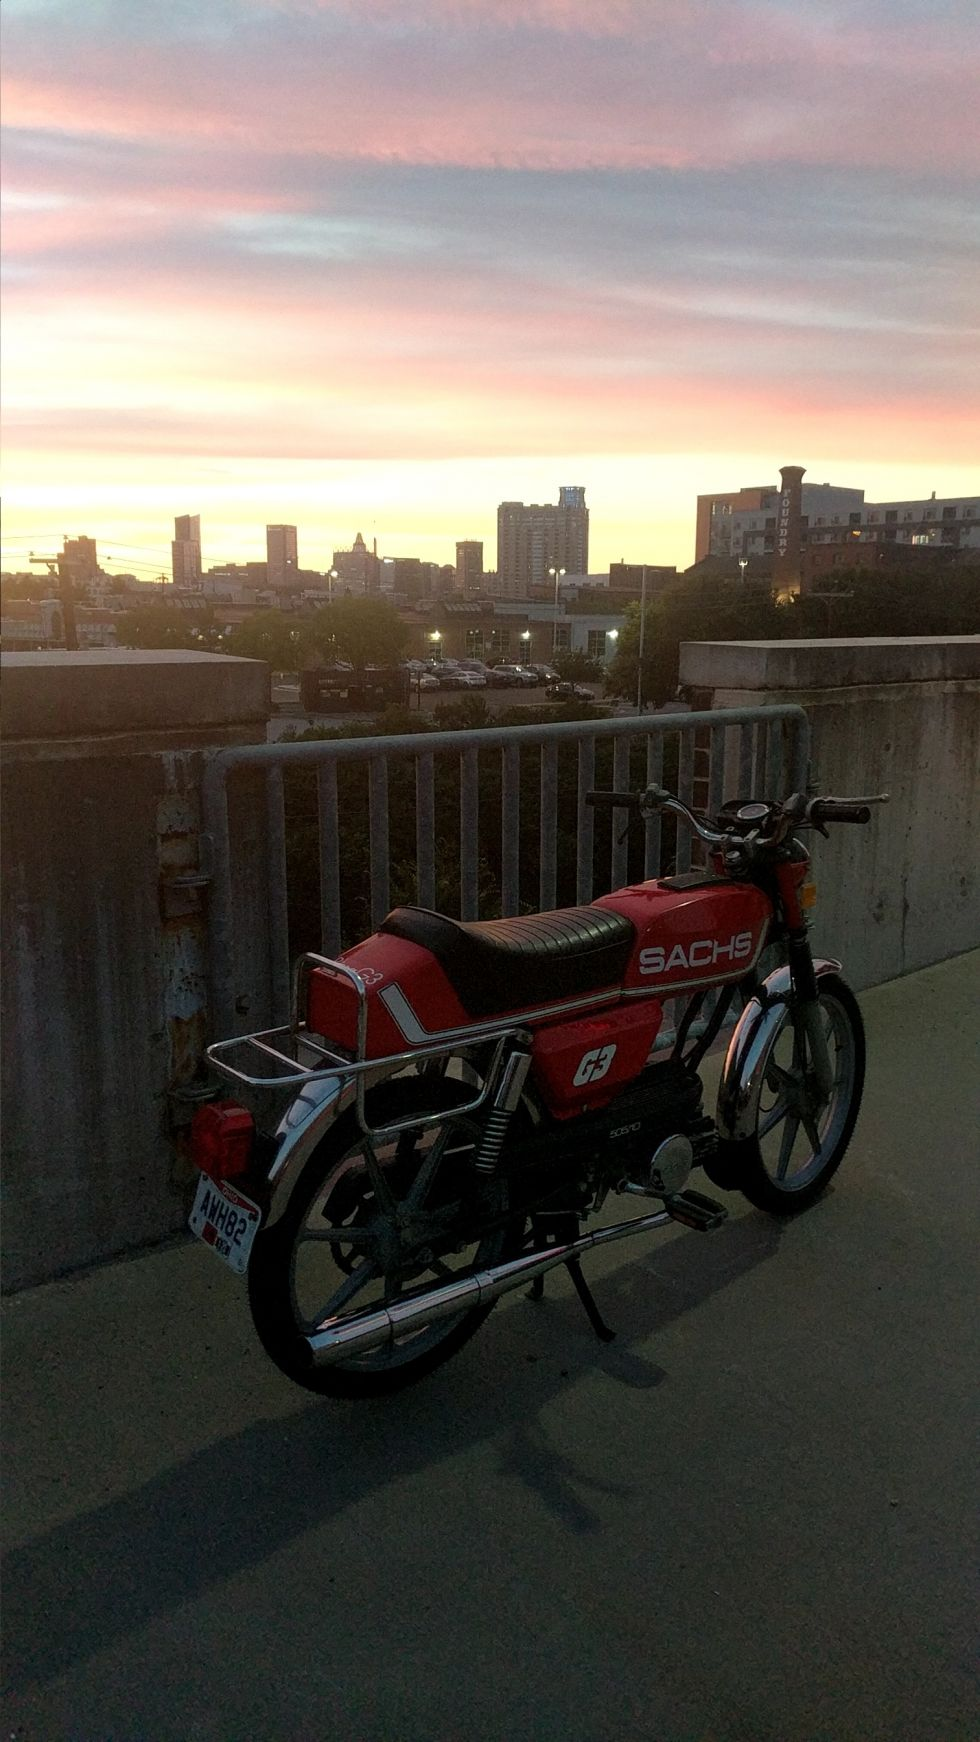 1980 Sachs Prima G3, Red